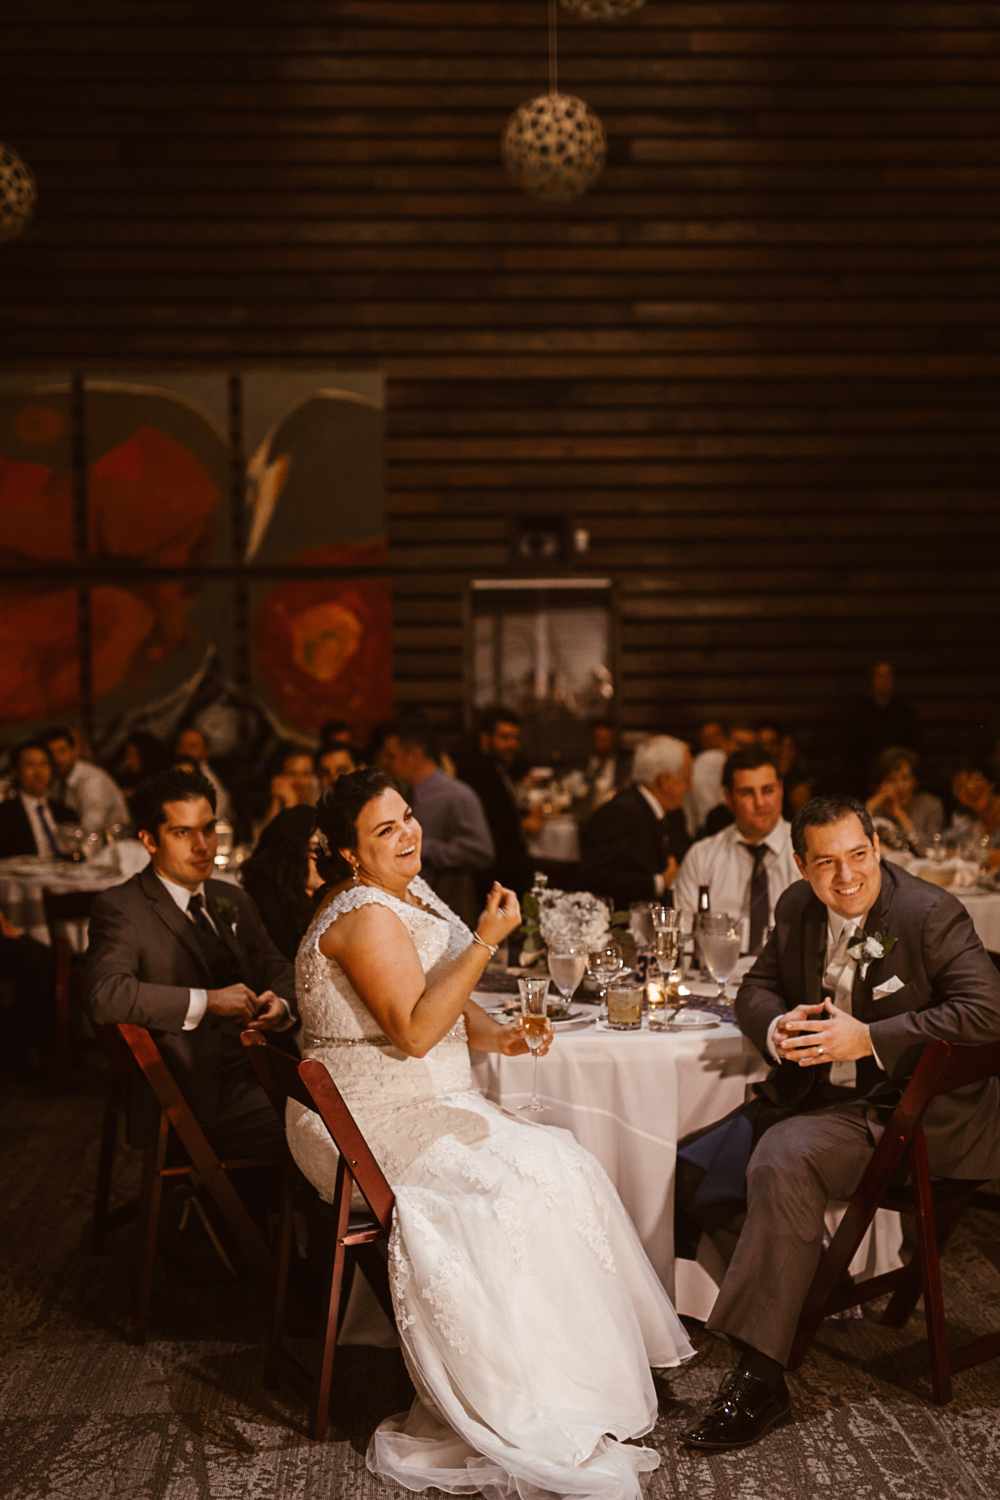 The_lodge_wedding_venue_nashville_photos-69.jpg